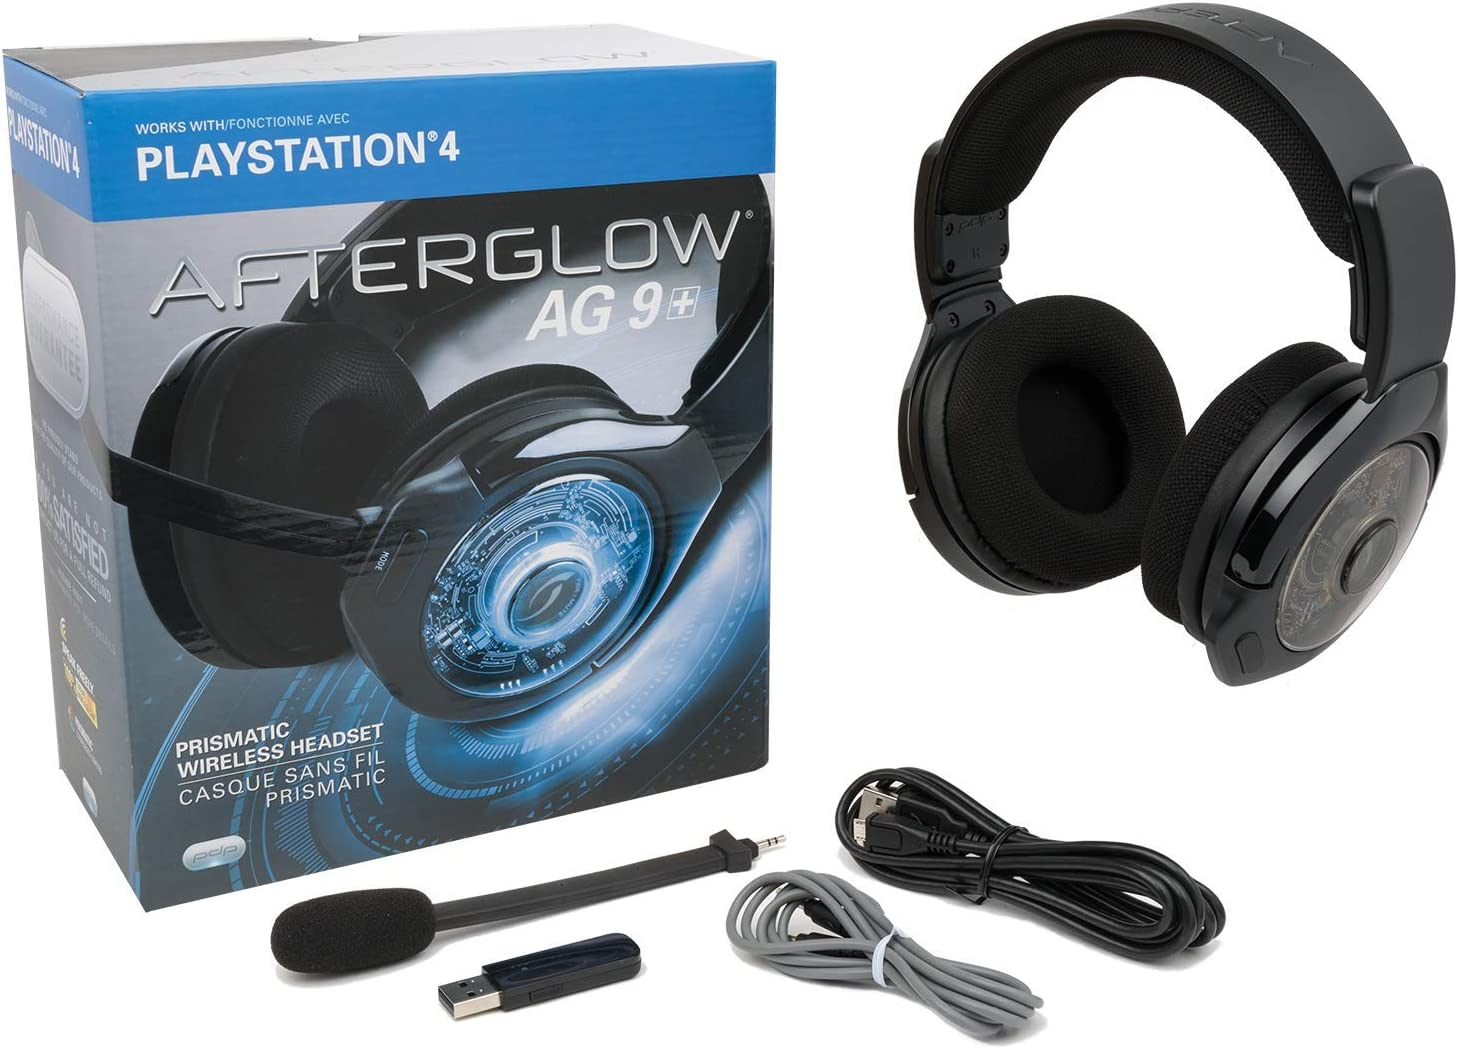 51565c86a18 Amazon.com: PDP Afterglow AG 9+ Prismatic True Wireless Headset for  PlayStation 4 - White: Video Games